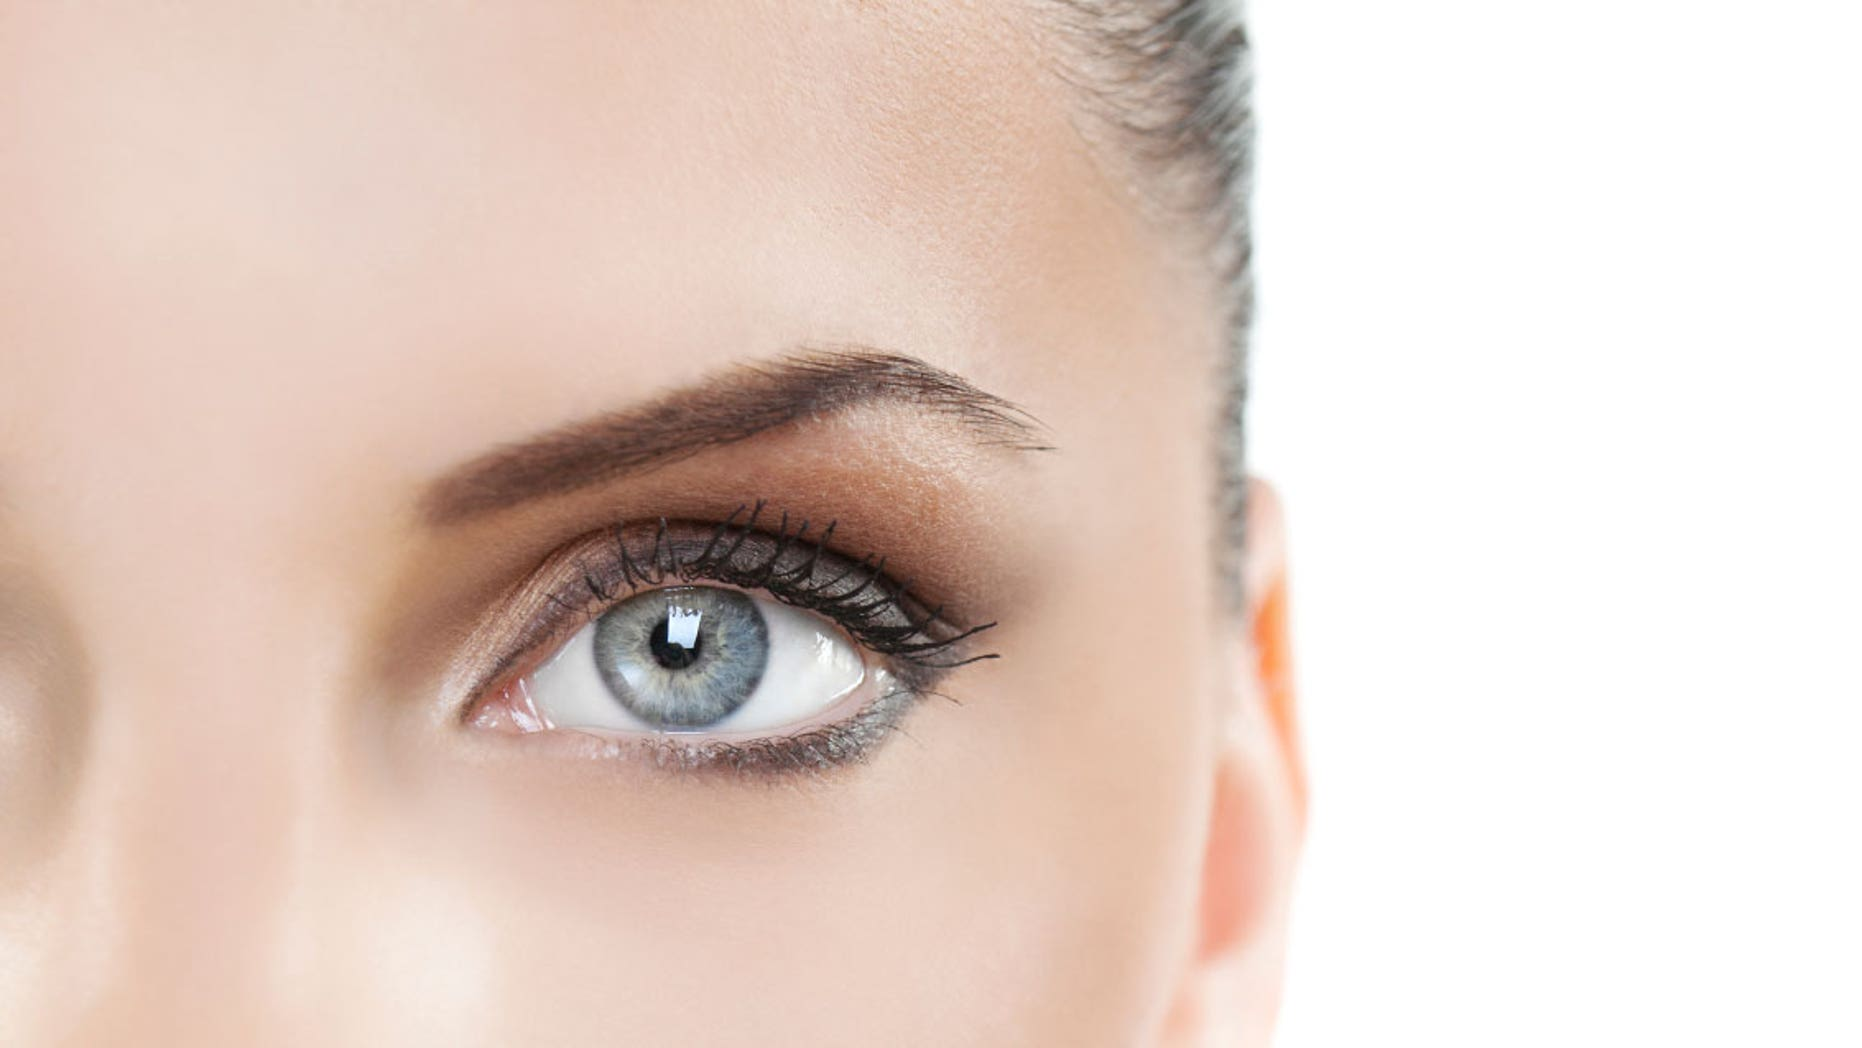 9836c5d8c81 LASIK eye surgery to correct a person s vision has been in use since the  mid-1990s